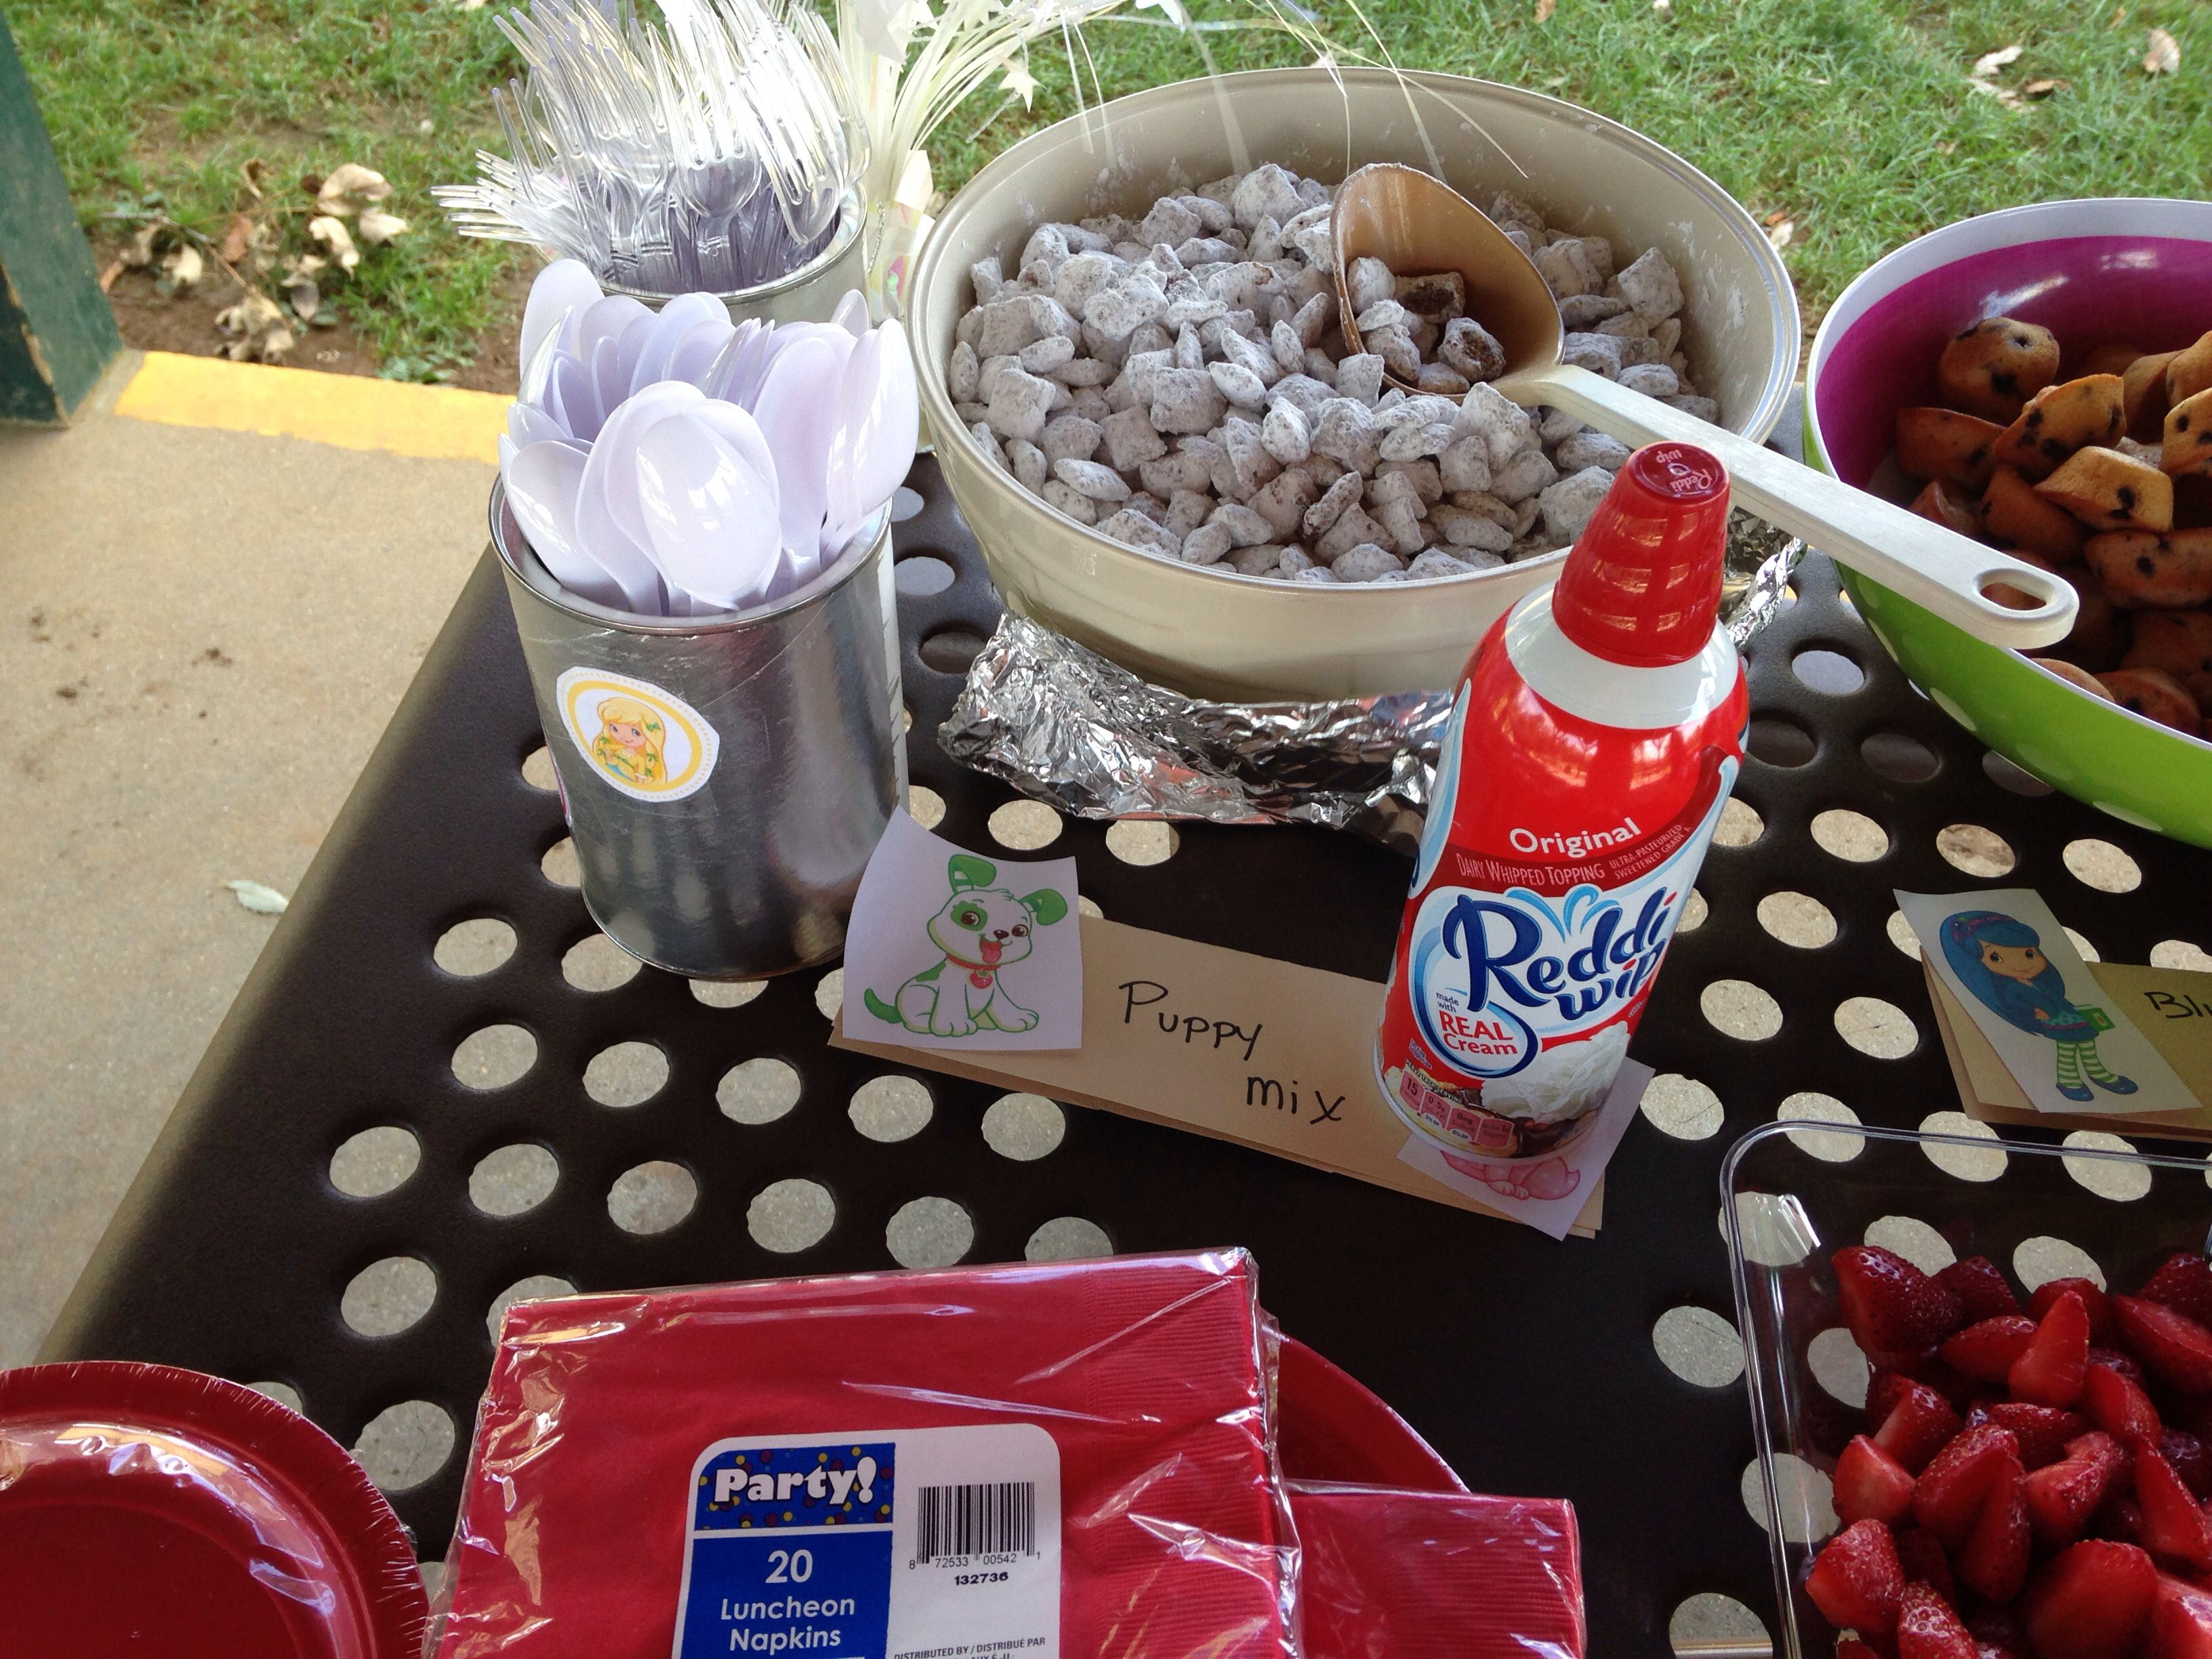 Strawberry shortcake party Food puppy chow to represent